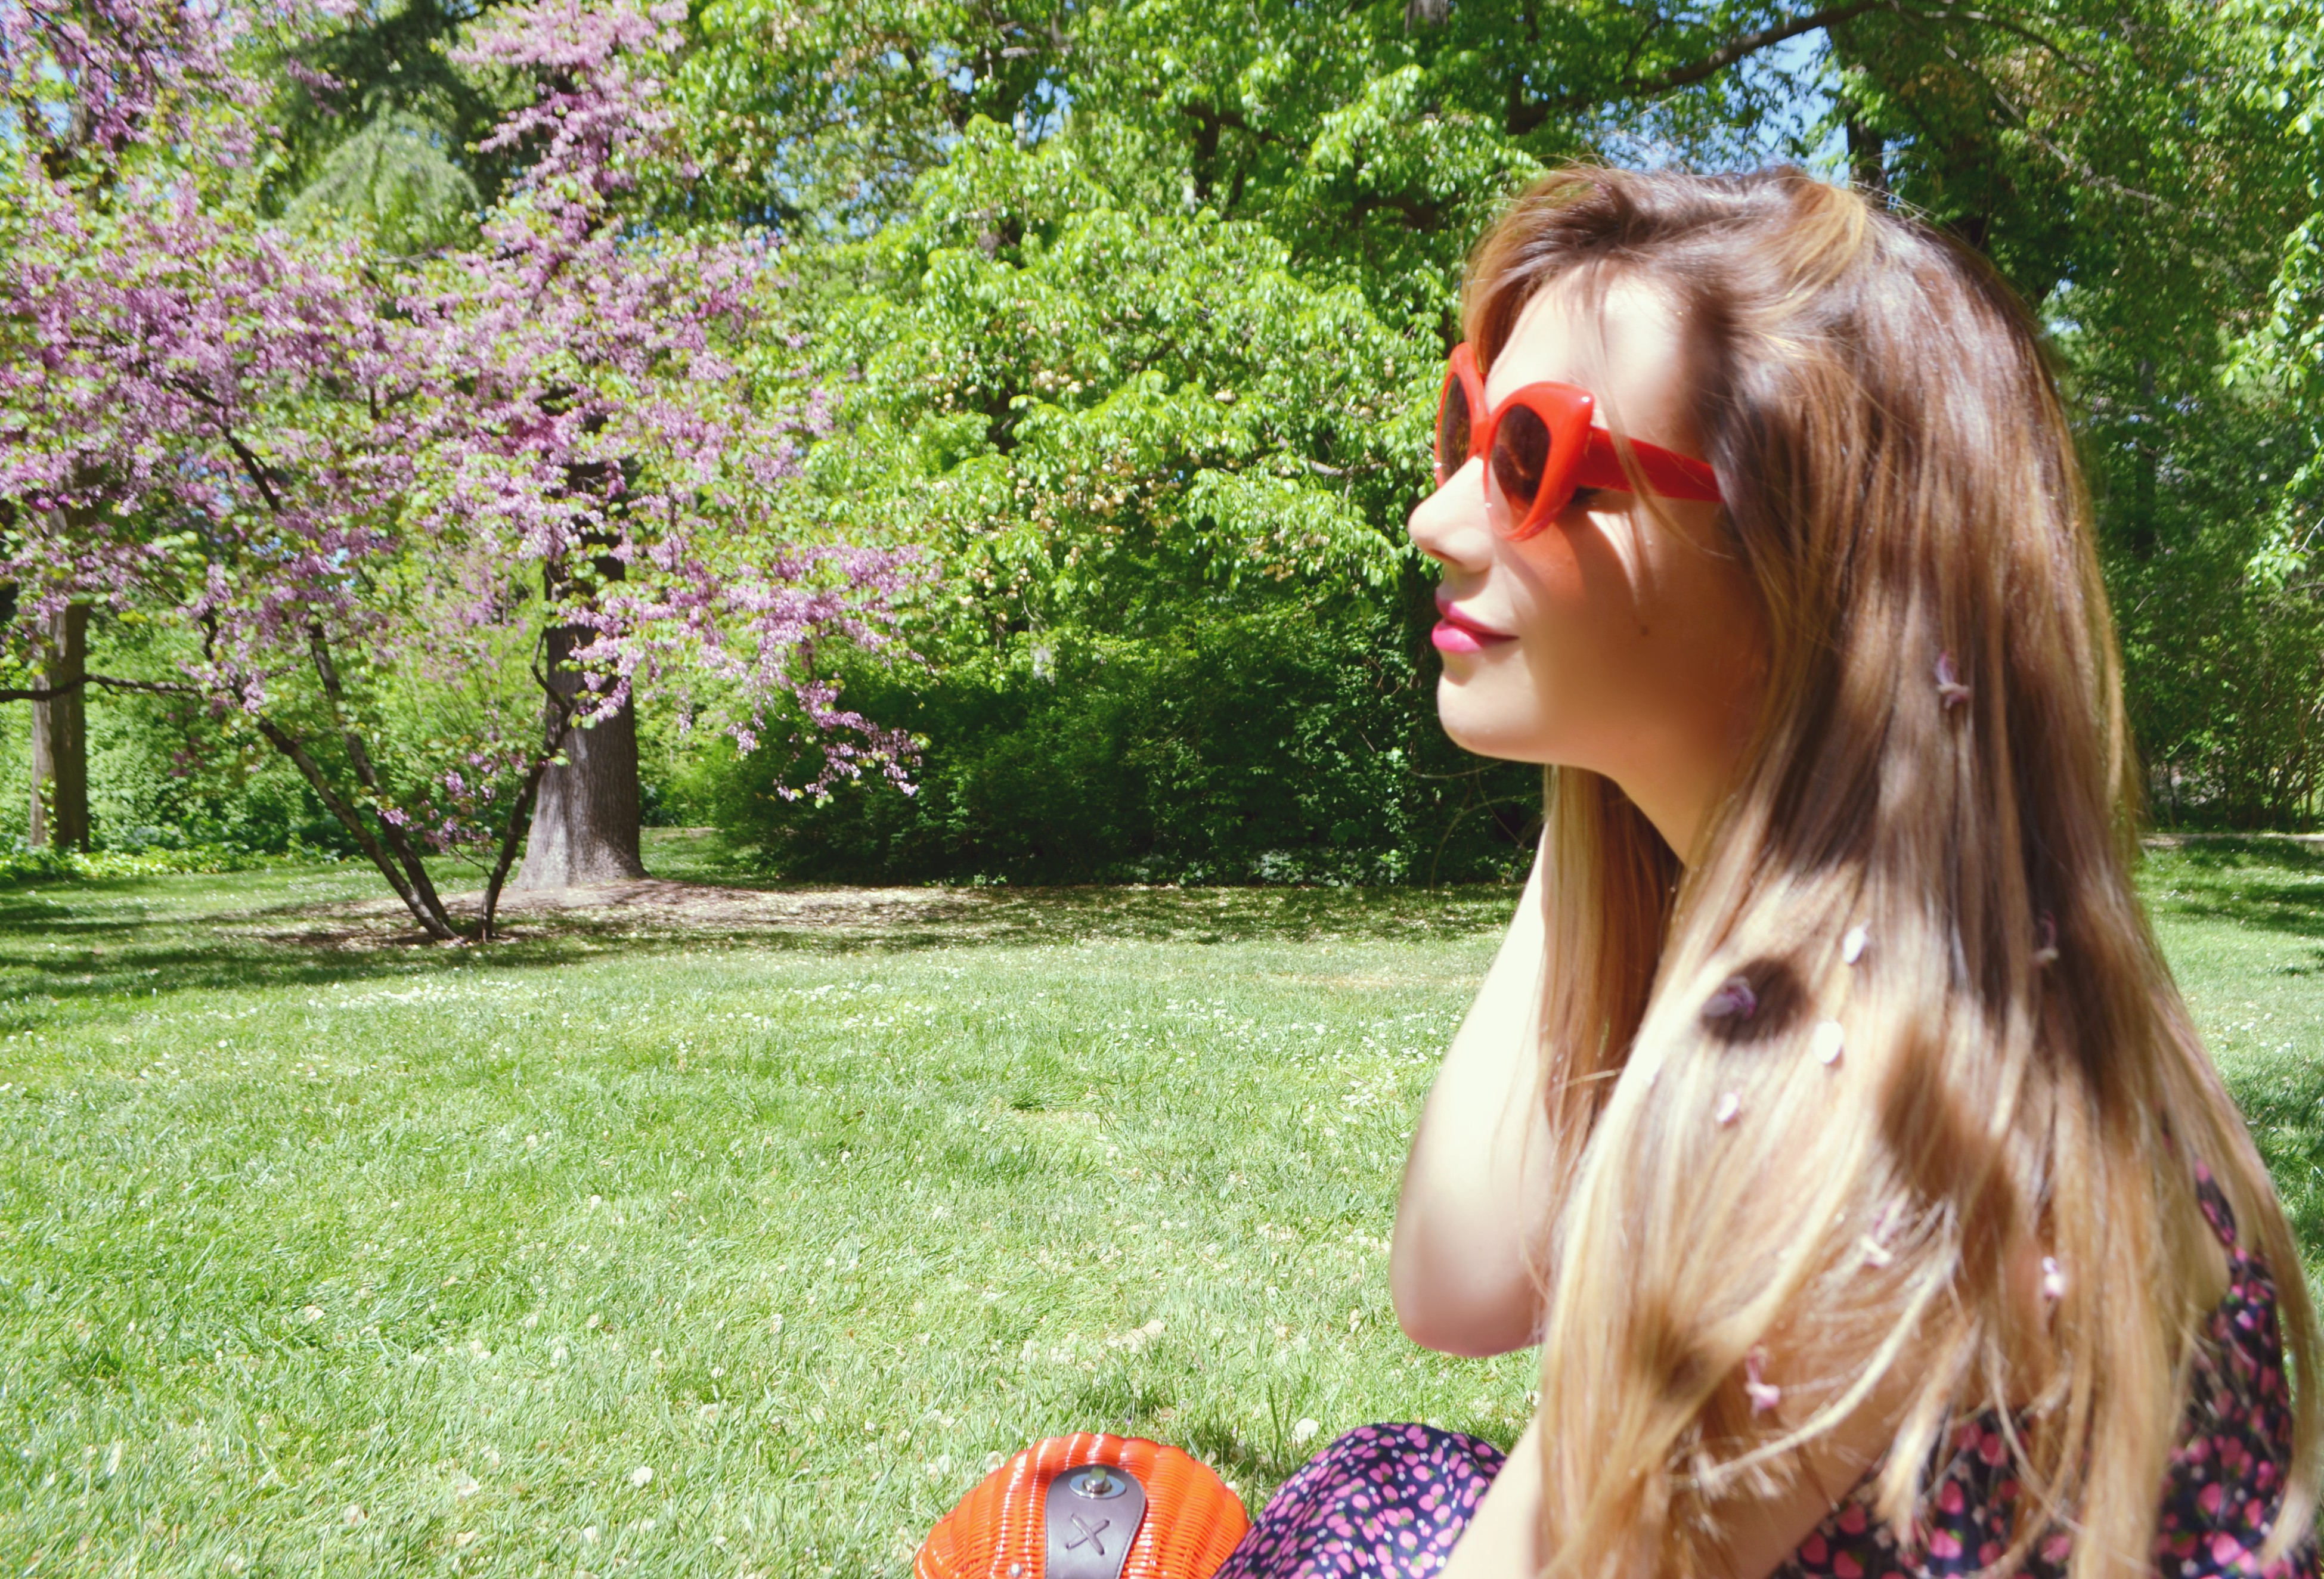 ChicAdicta-blog-de-moda-influencer-Madrid-fashionista-Chic-Adicta-retro-sunglasses-look-de-primavera-trakabarraka-PiensaenChic-Piensa-en-Chic